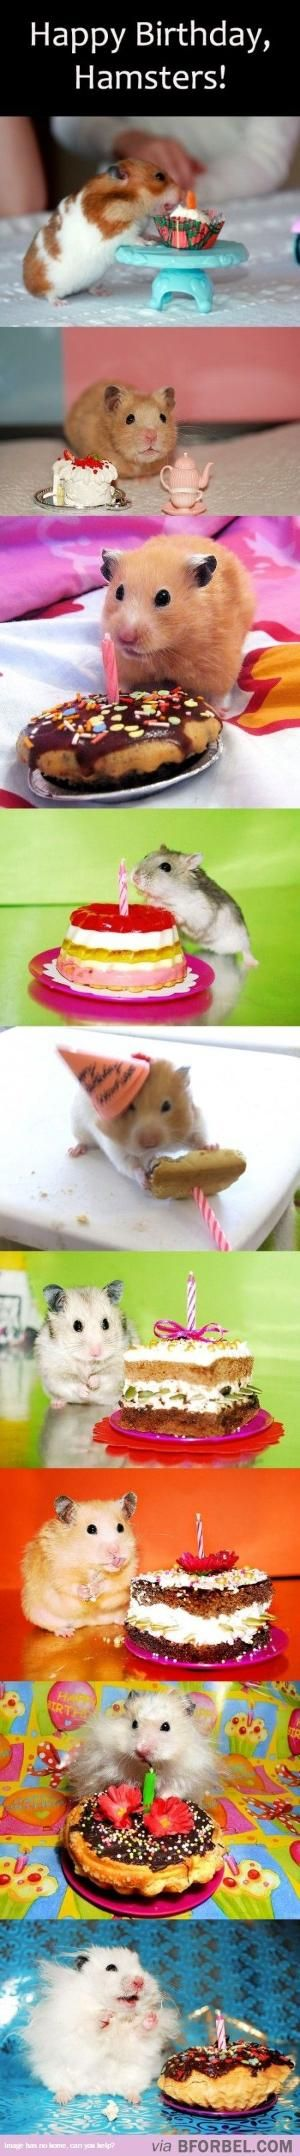 9 Hamsters Celebrating Their Birthdays… by tamara